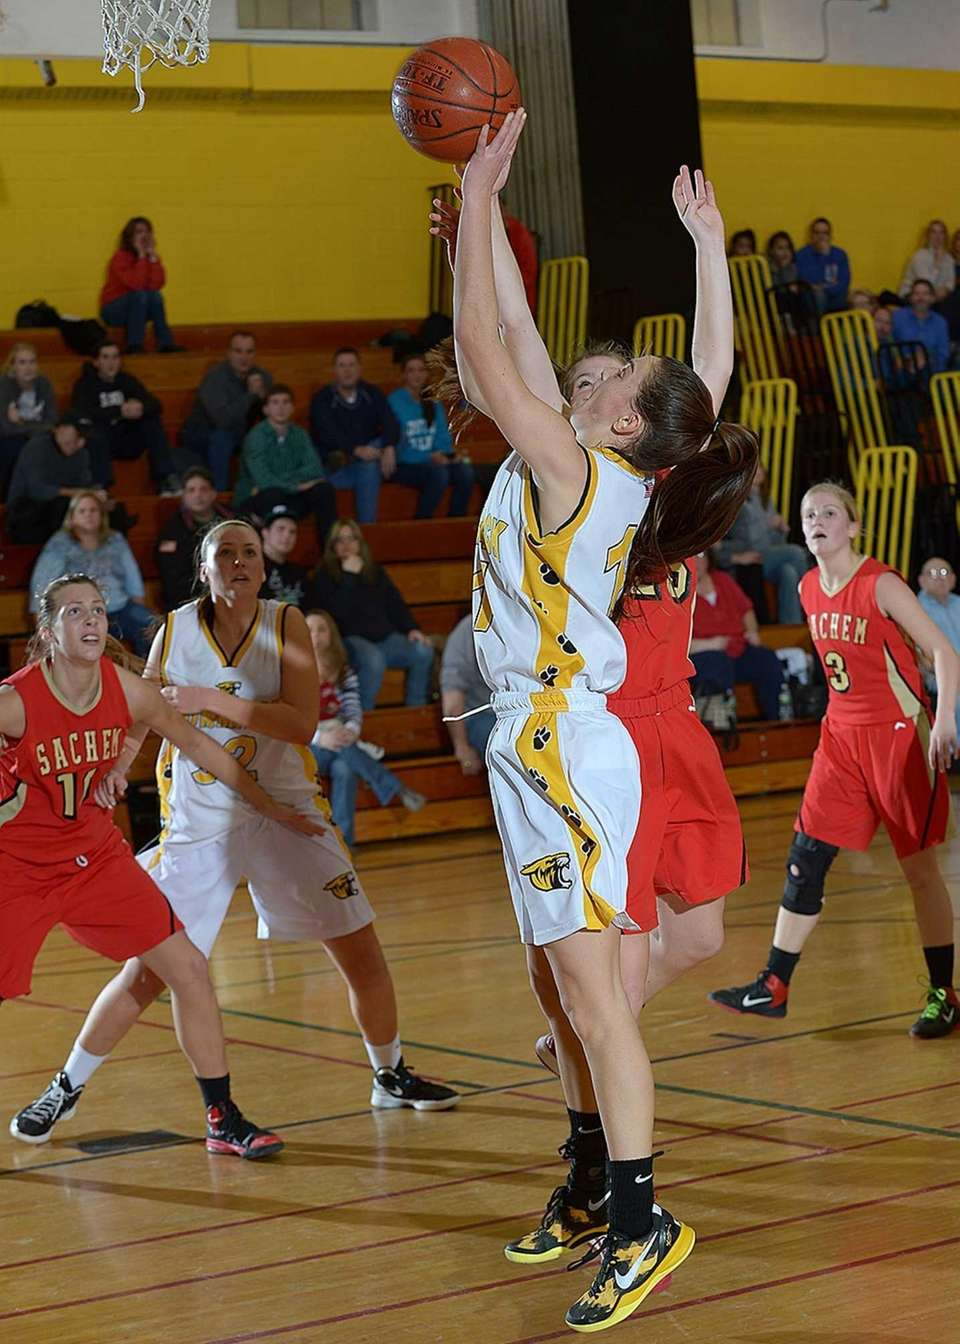 Commack's Erin Storck (11) gets foulded on the